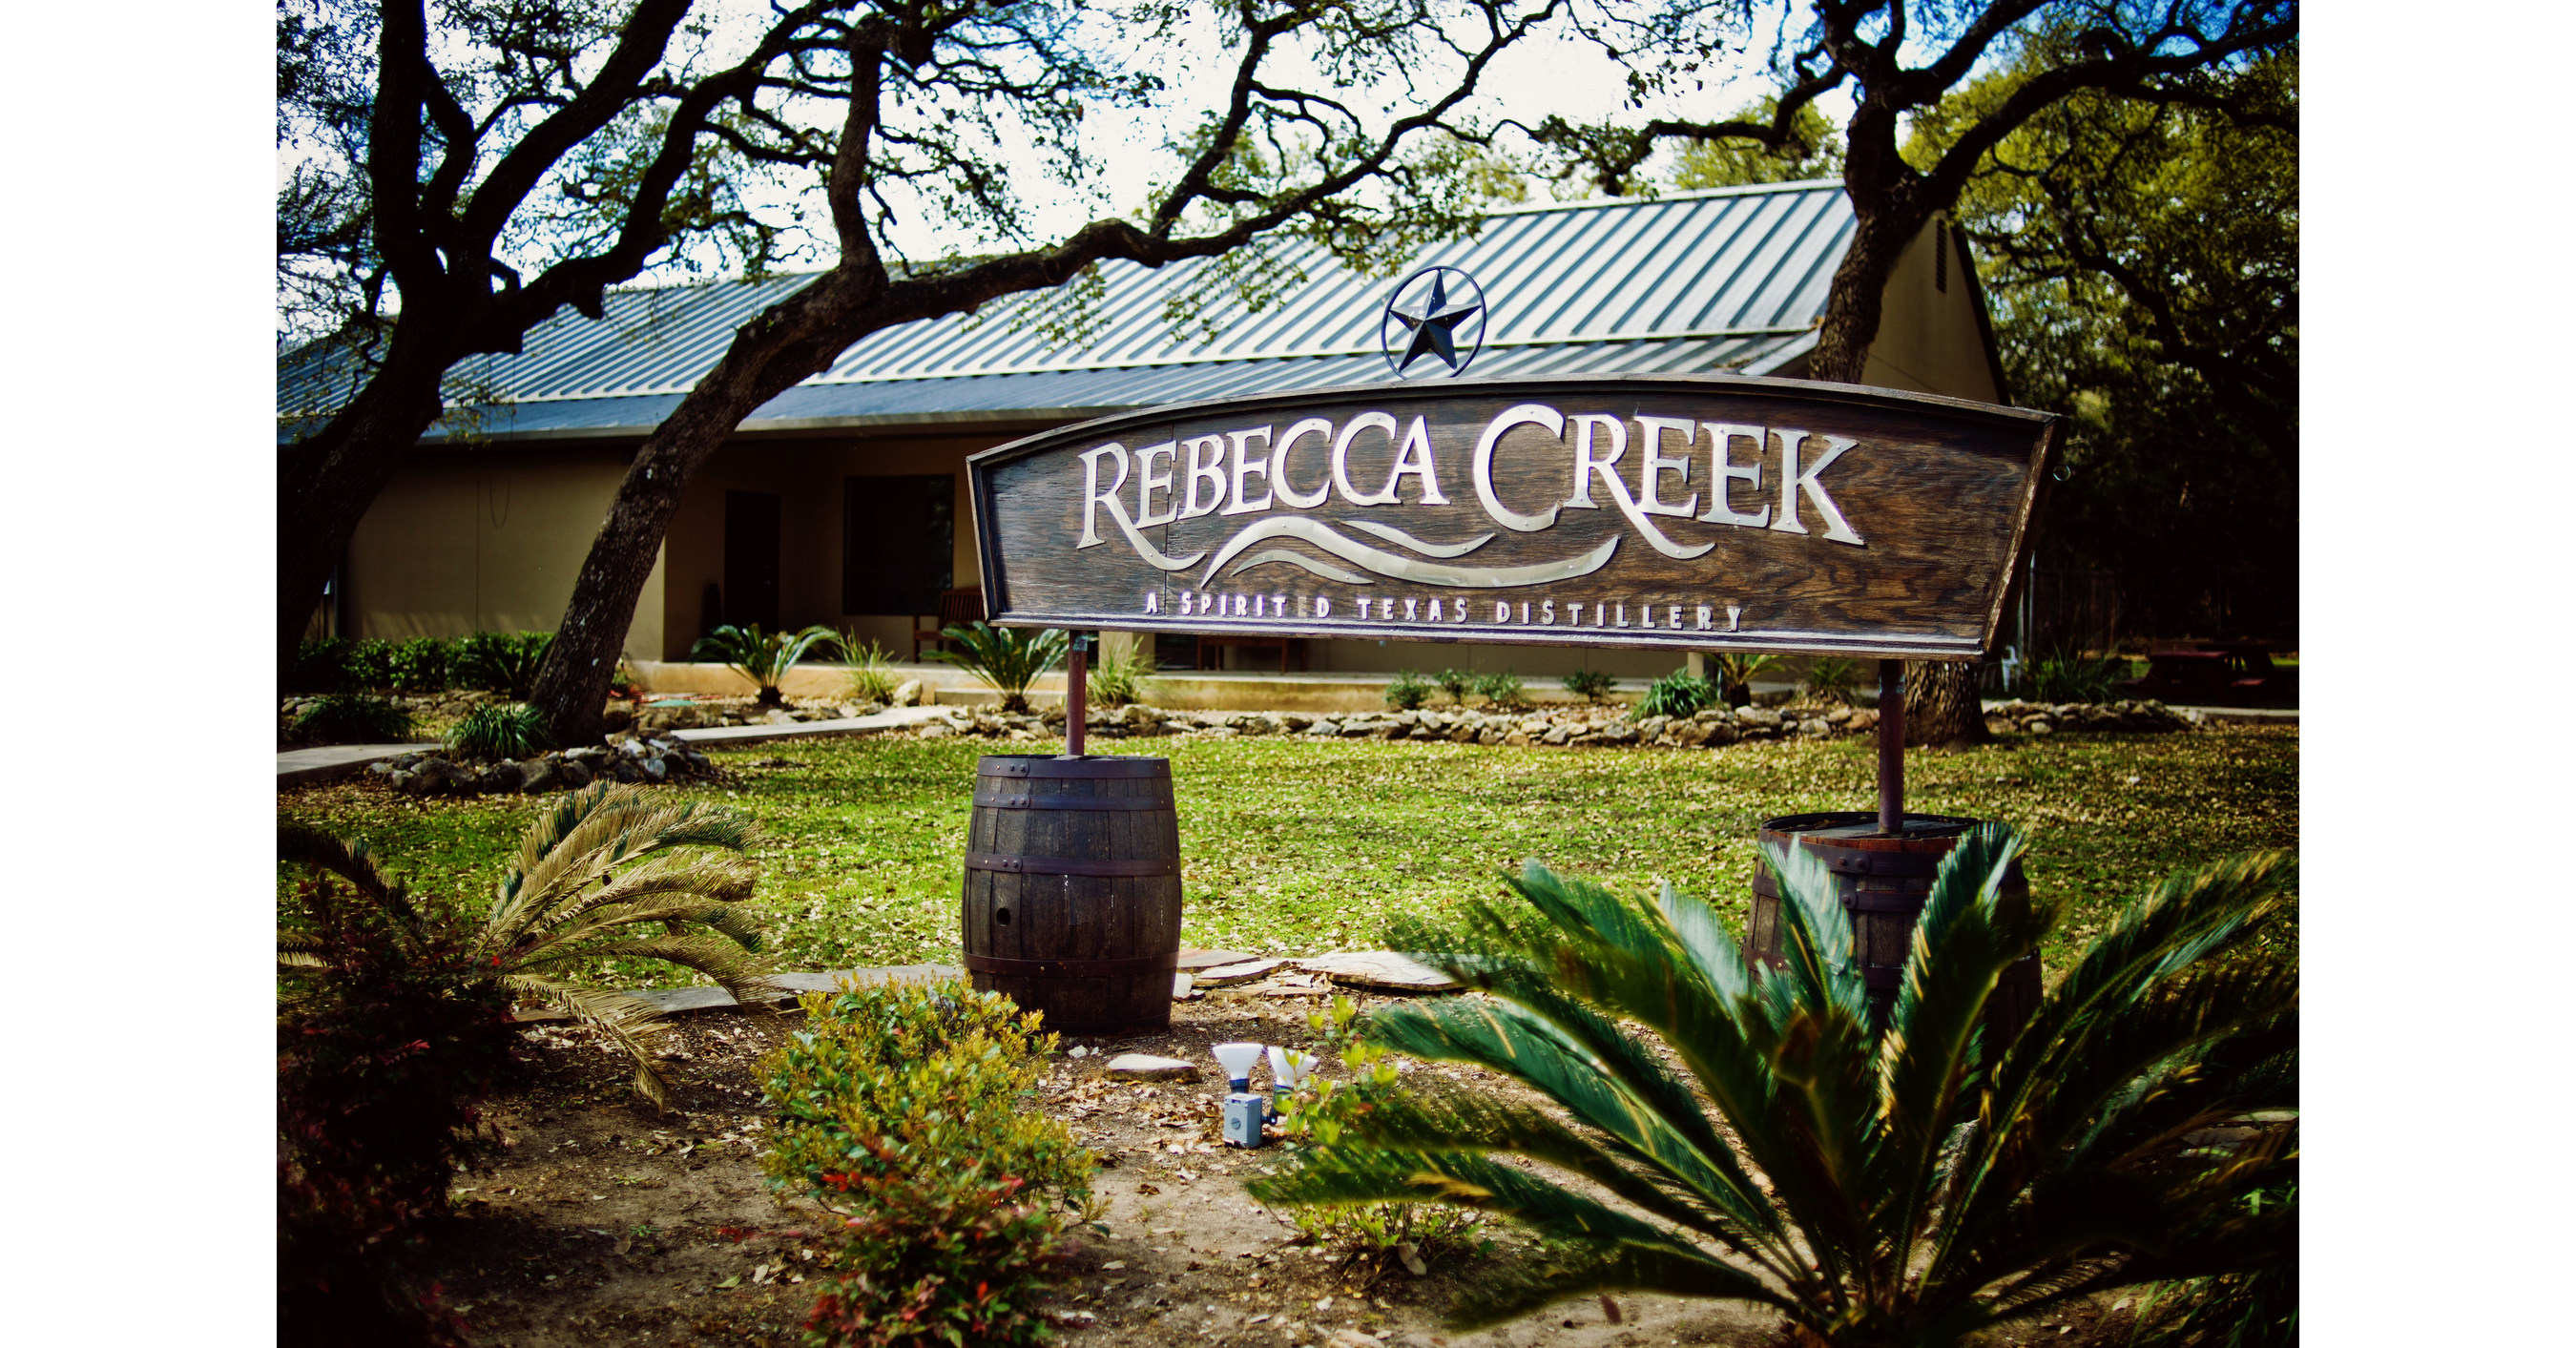 Rebecca Creek Distillery Teams With ClubCorp To Offer Members Exclusive Distillery Experience